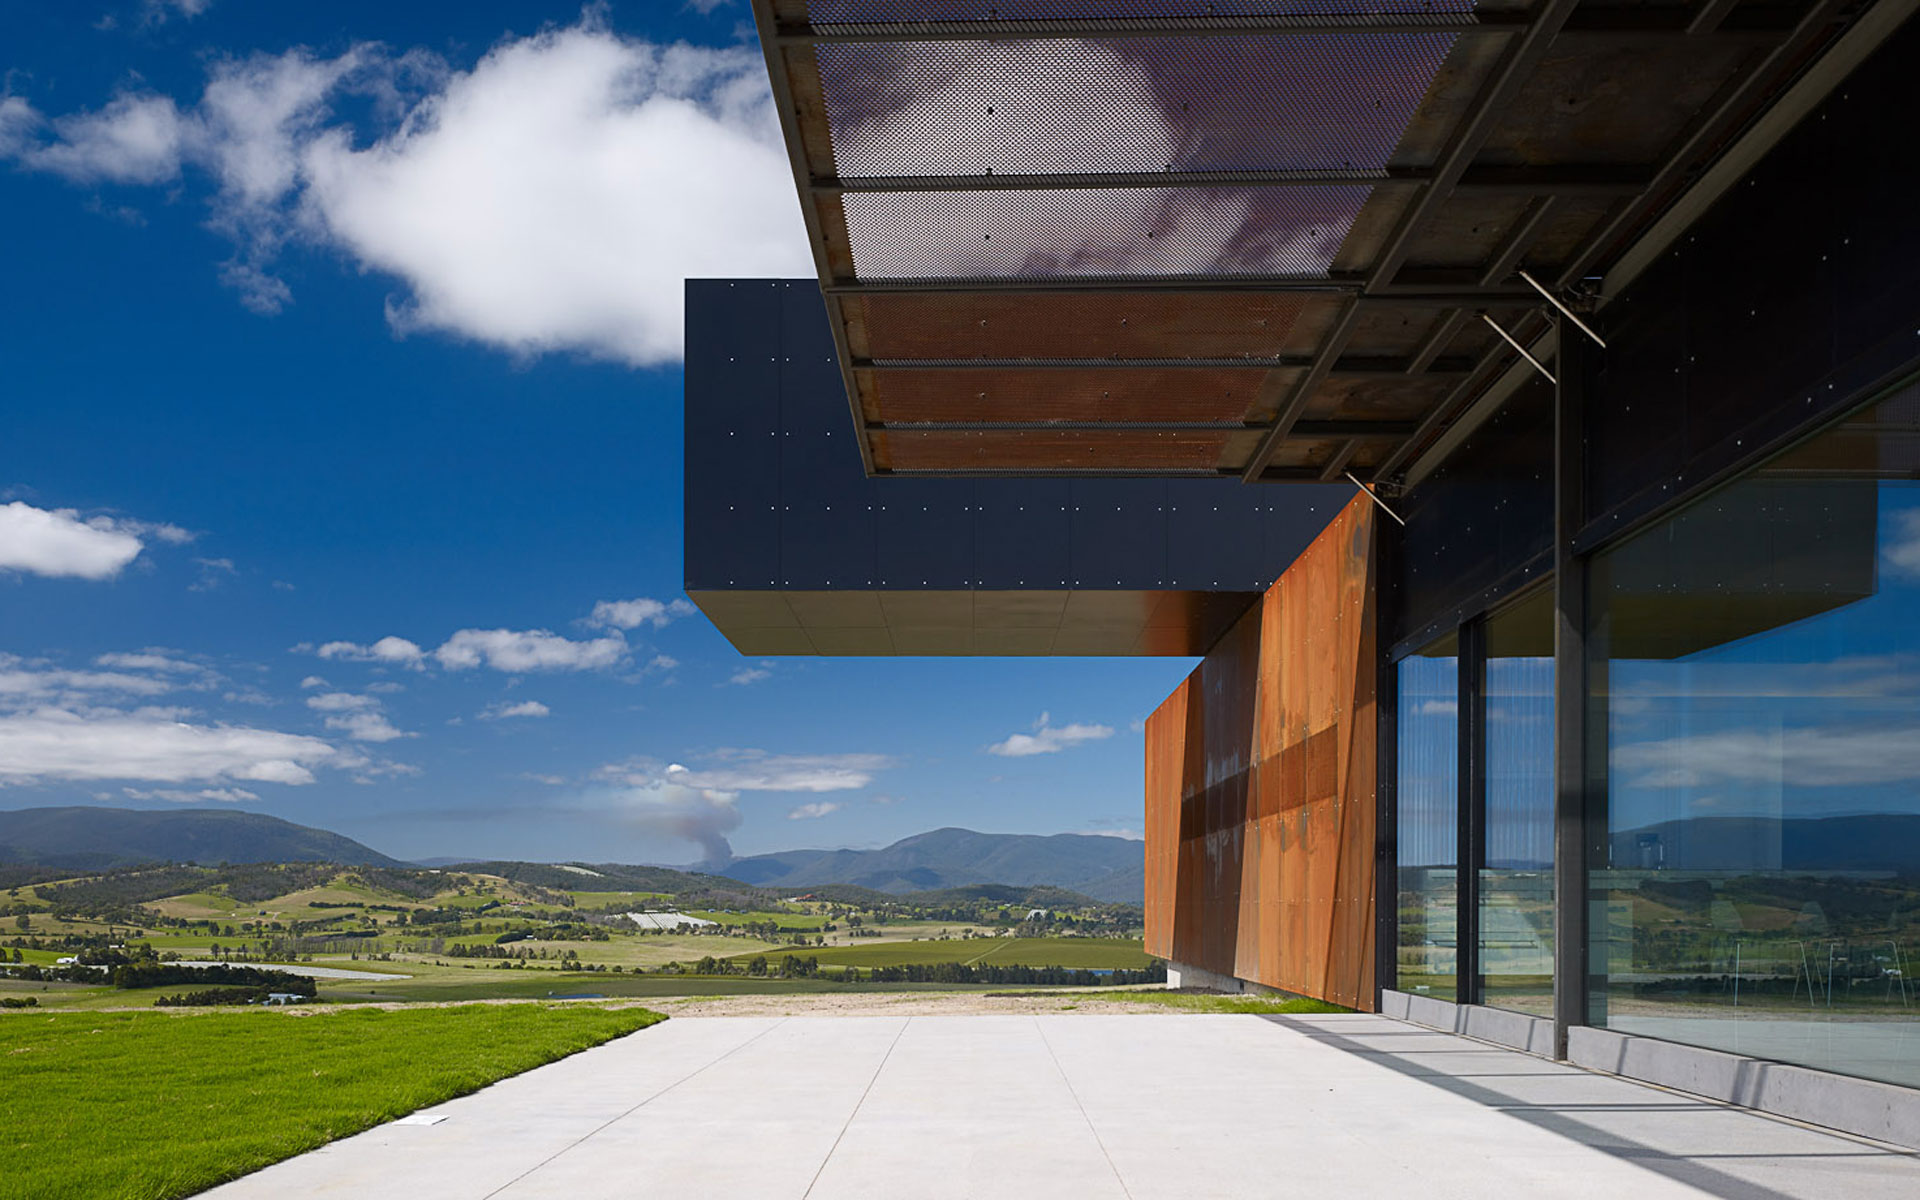 View Hill House + Vineyard, Yarra Valley, Victoria, Australia